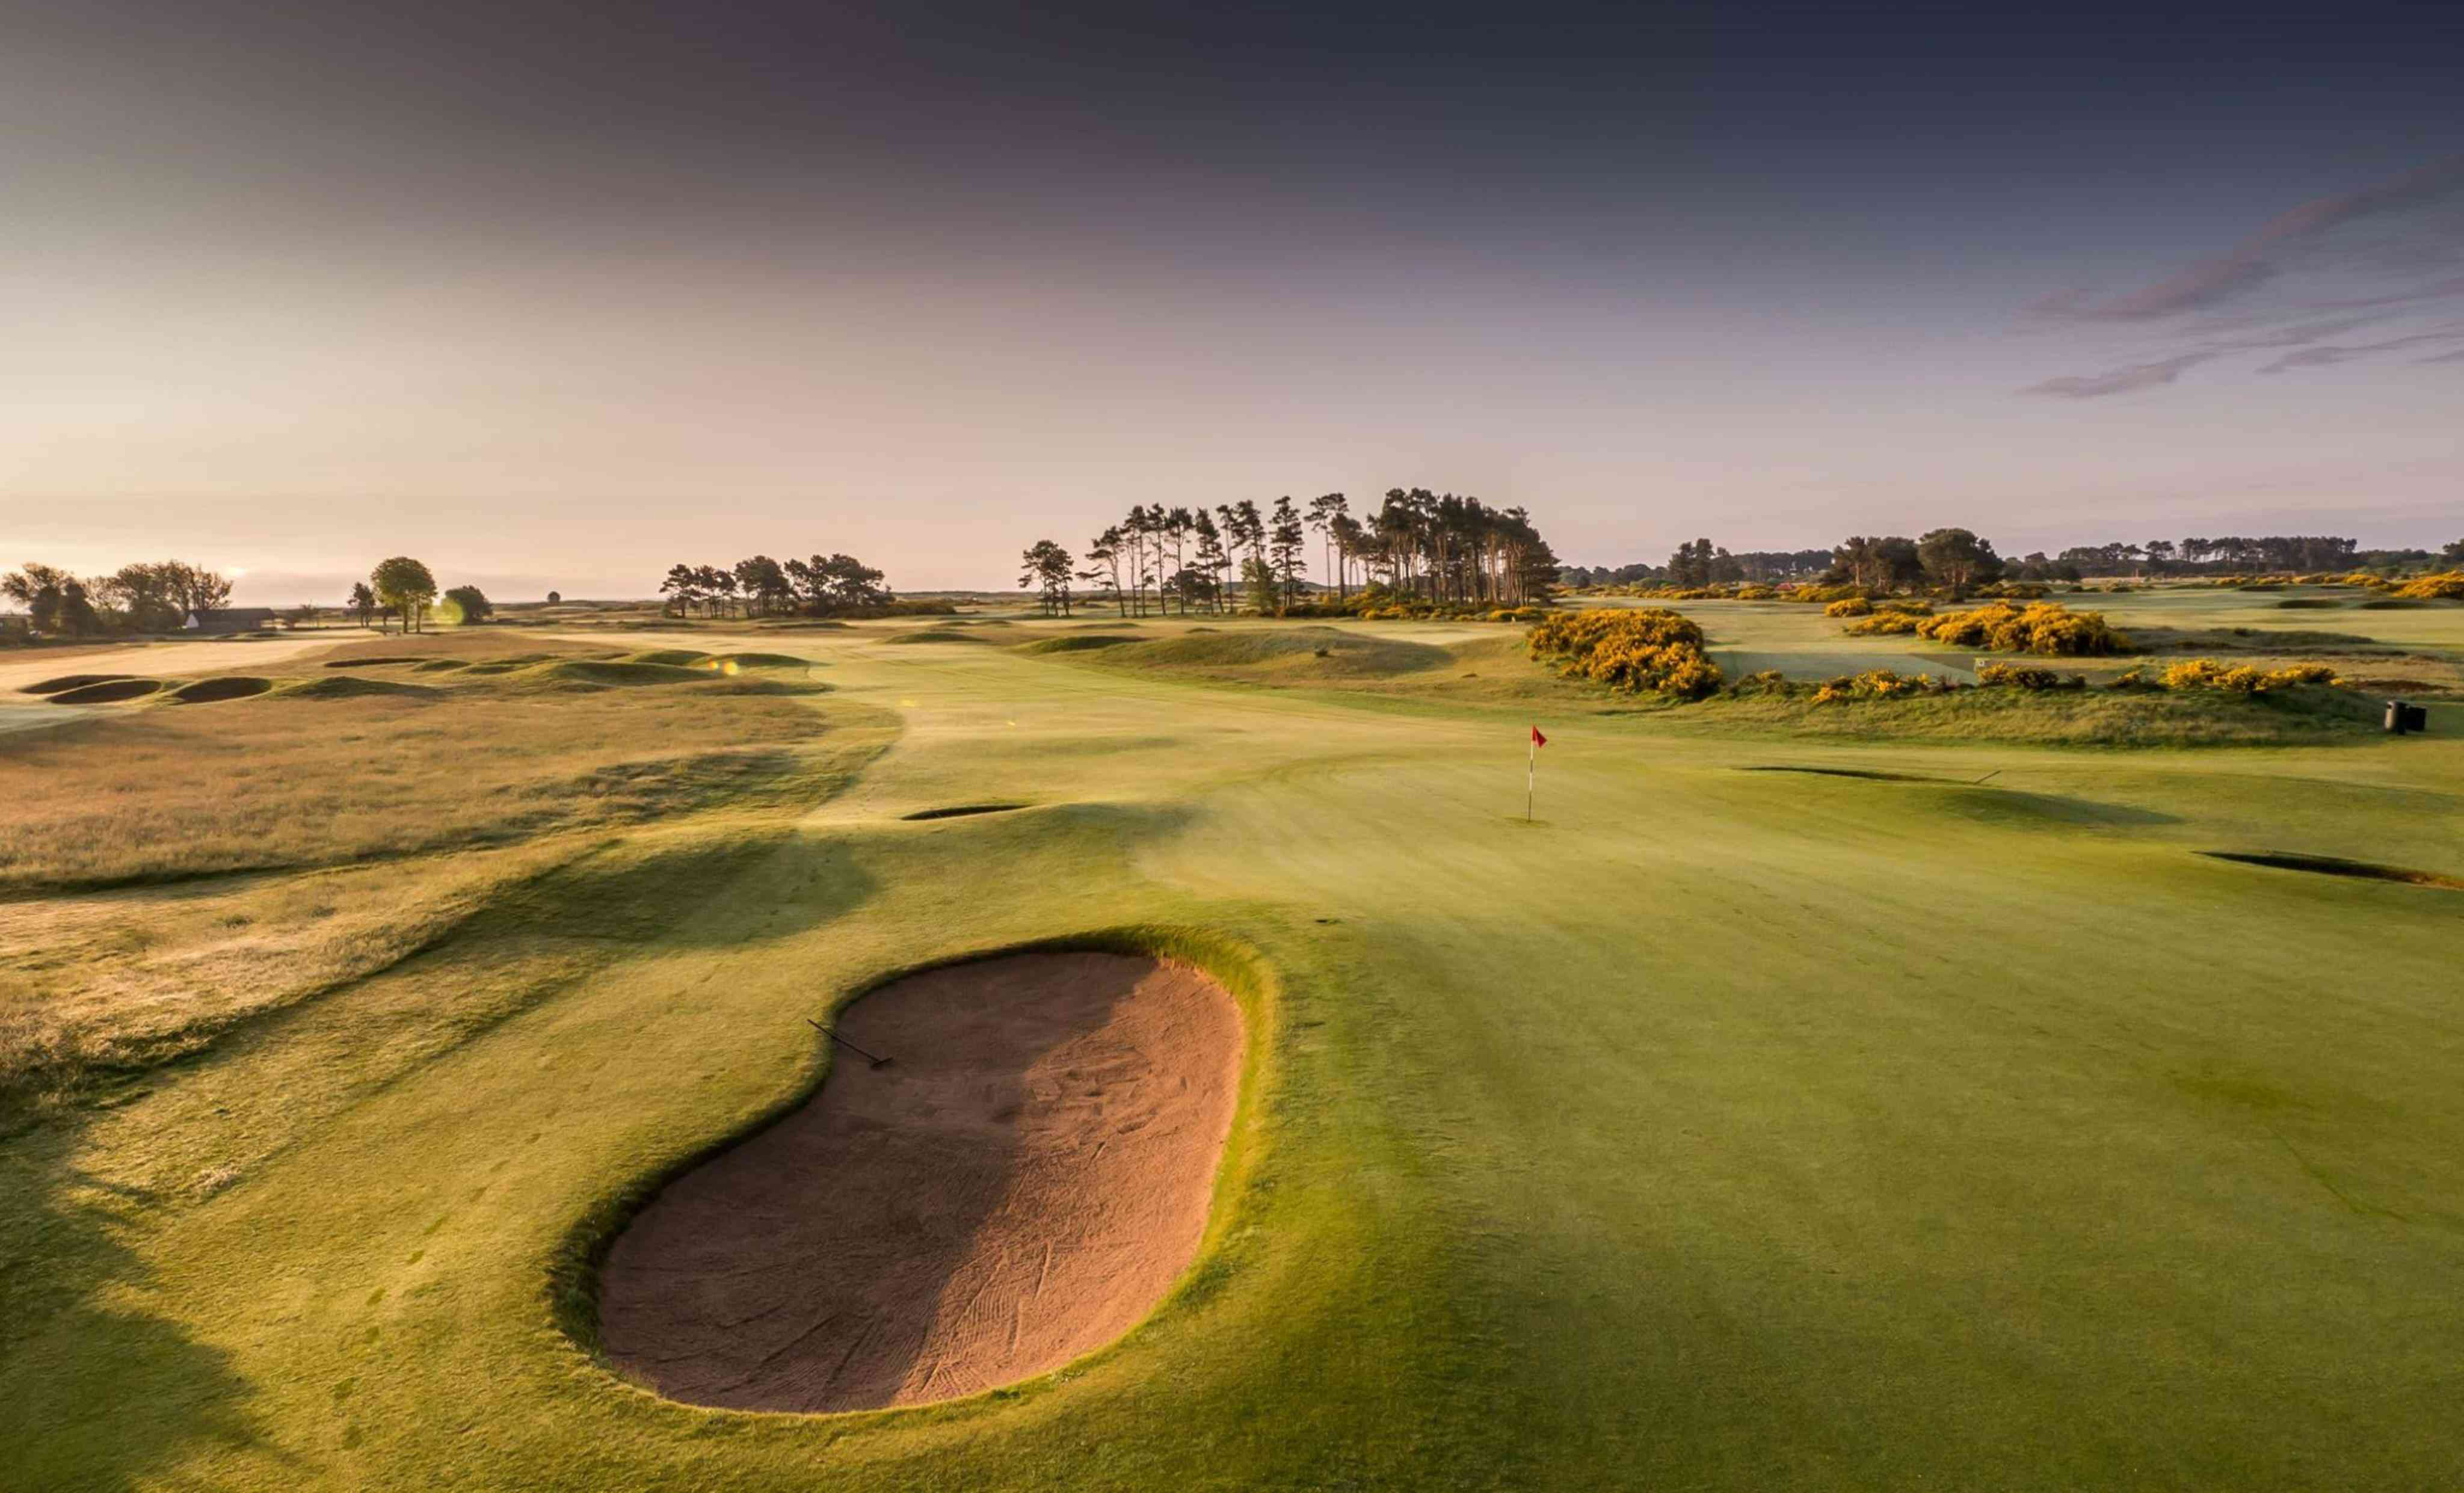 Golf course in scotland bathed in golden light